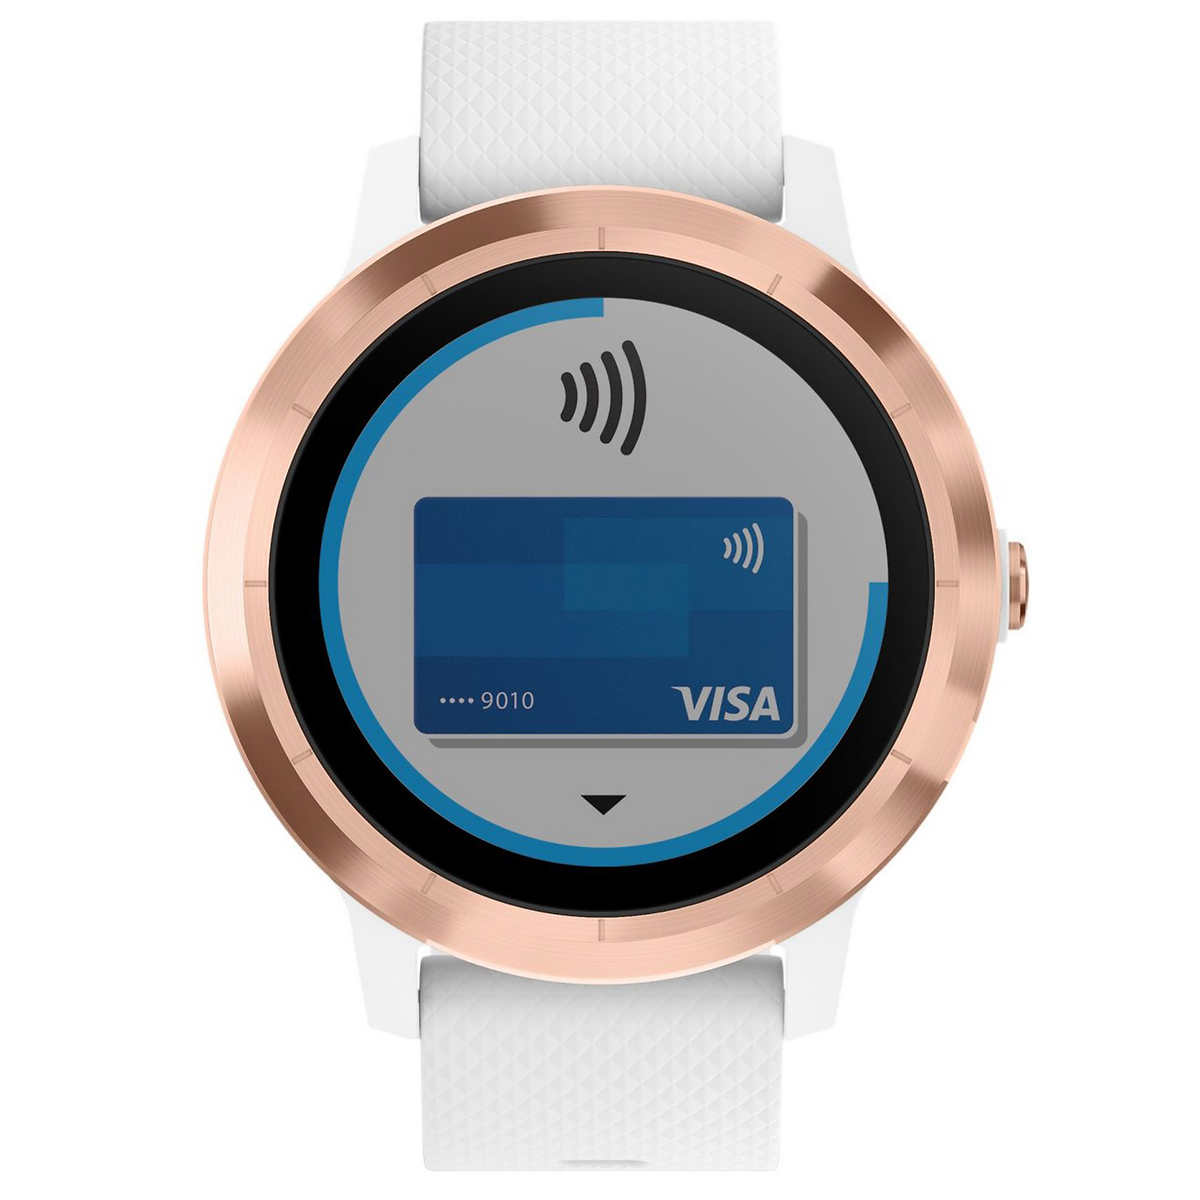 Garmin vivoactive 3 White with Rose Gold Hardware GPS Smartwatch